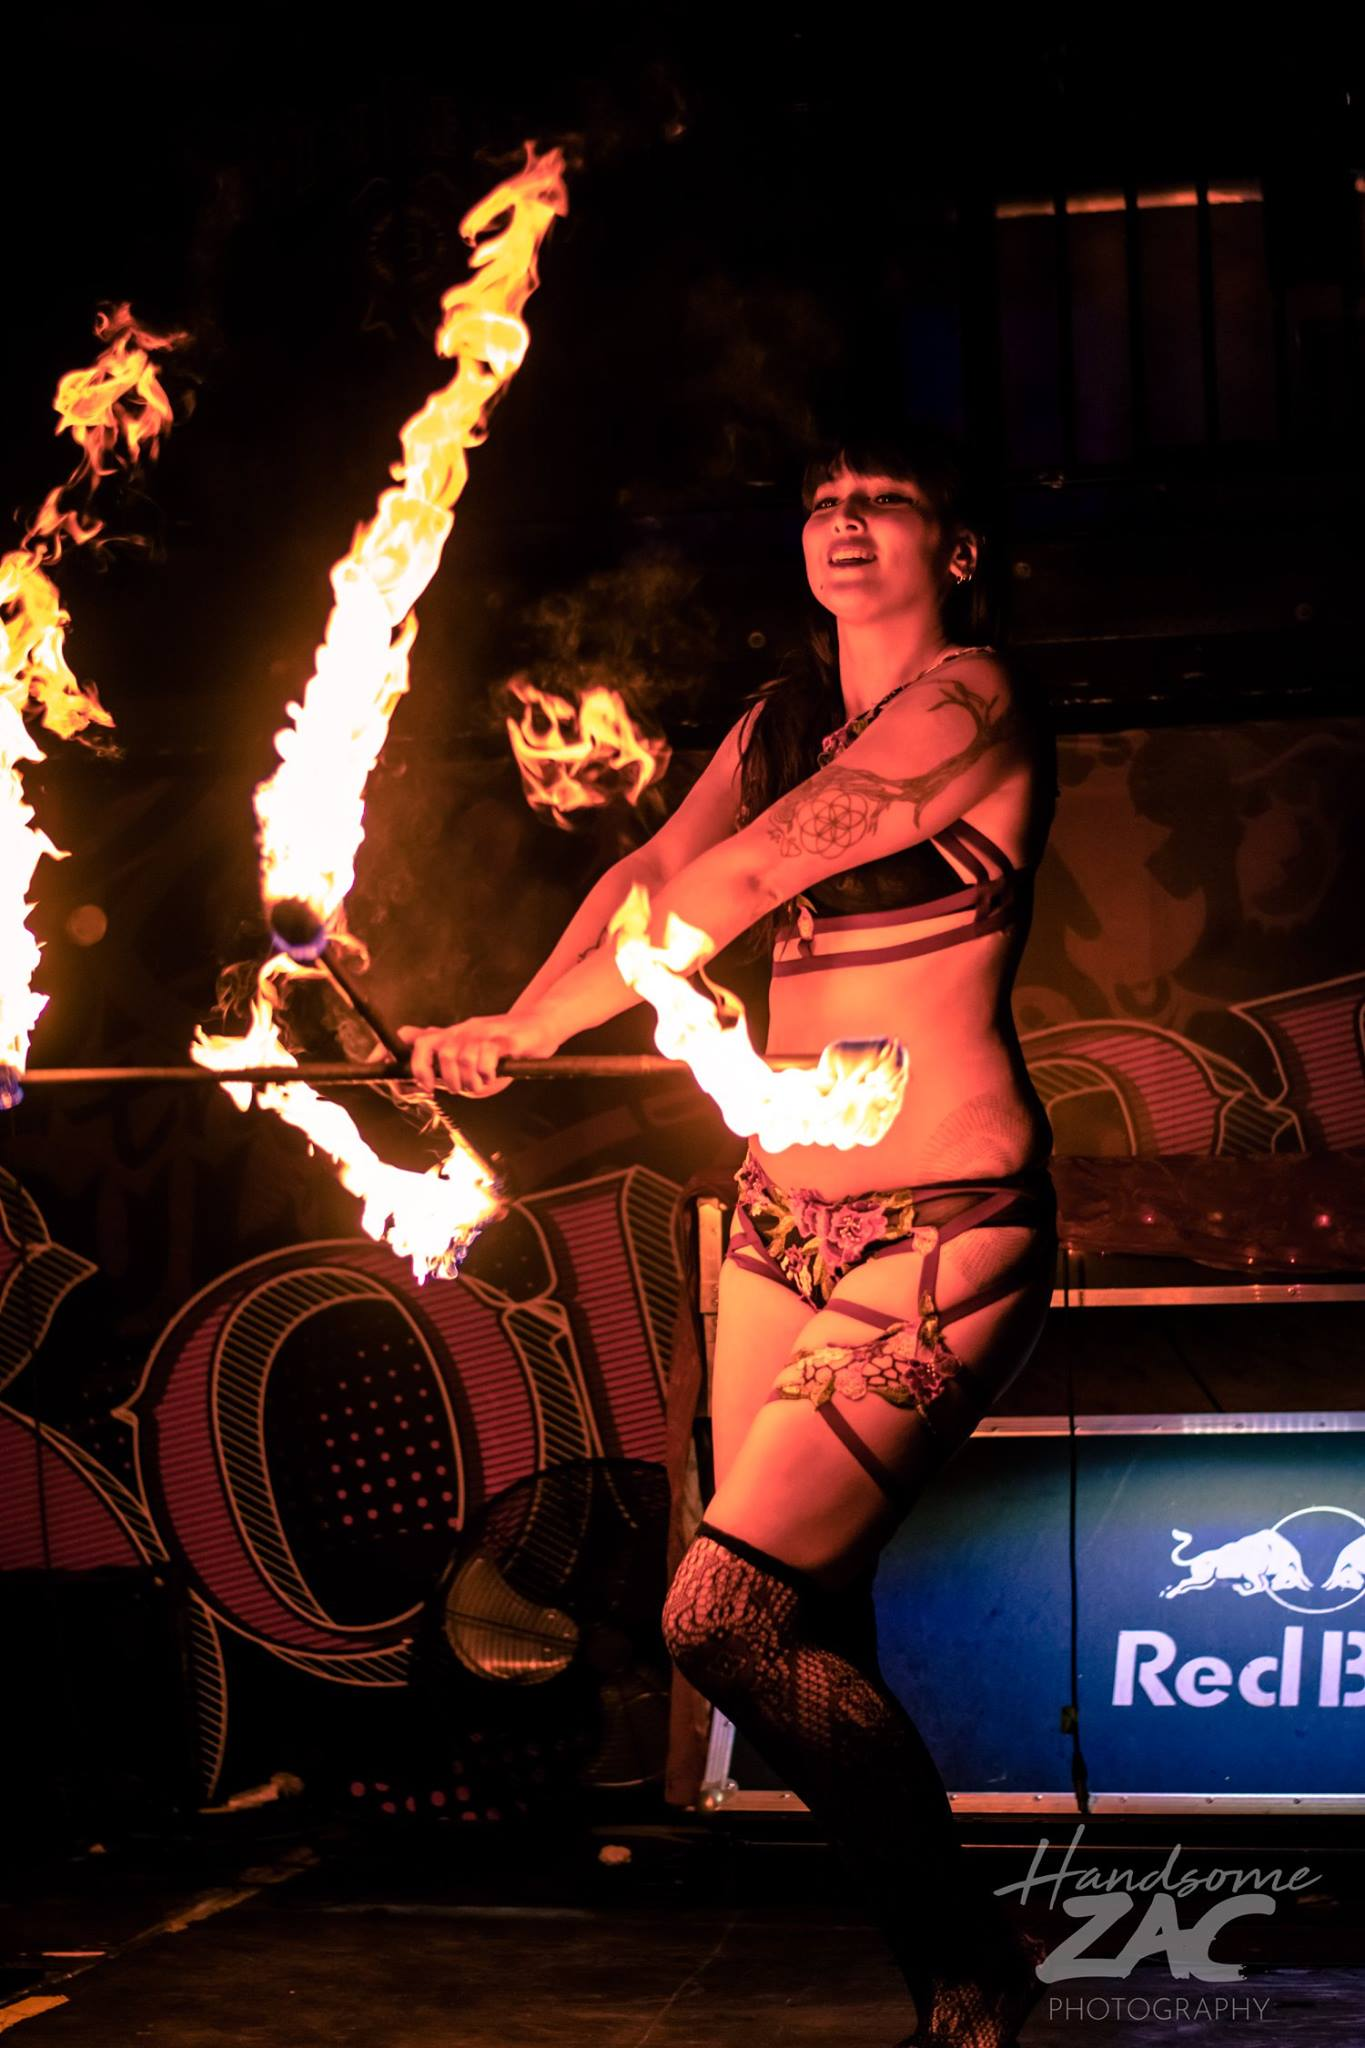 Ottawa Fire Performer Kaylie Flamewater Circus